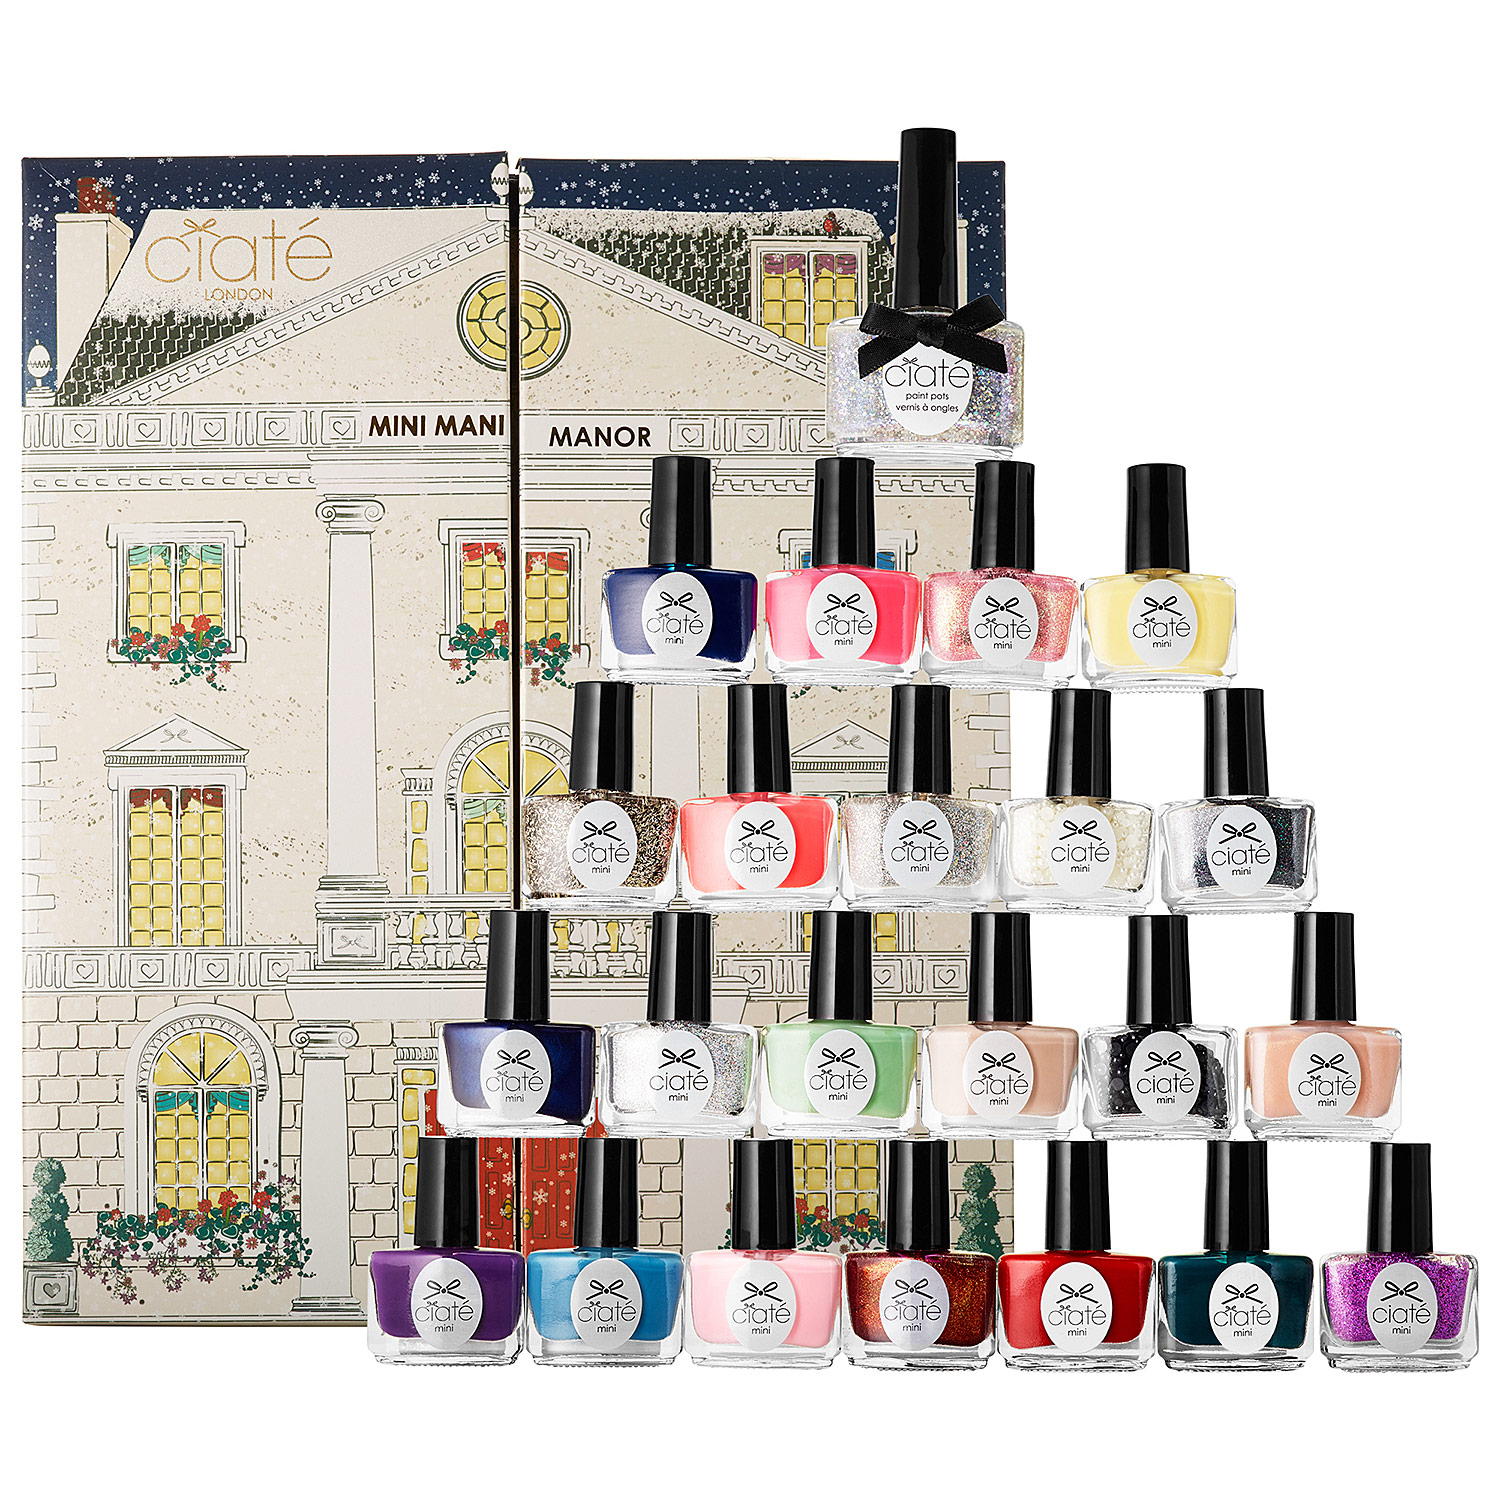 Ciaté Mini Mani Manor Advent Calendar 2014